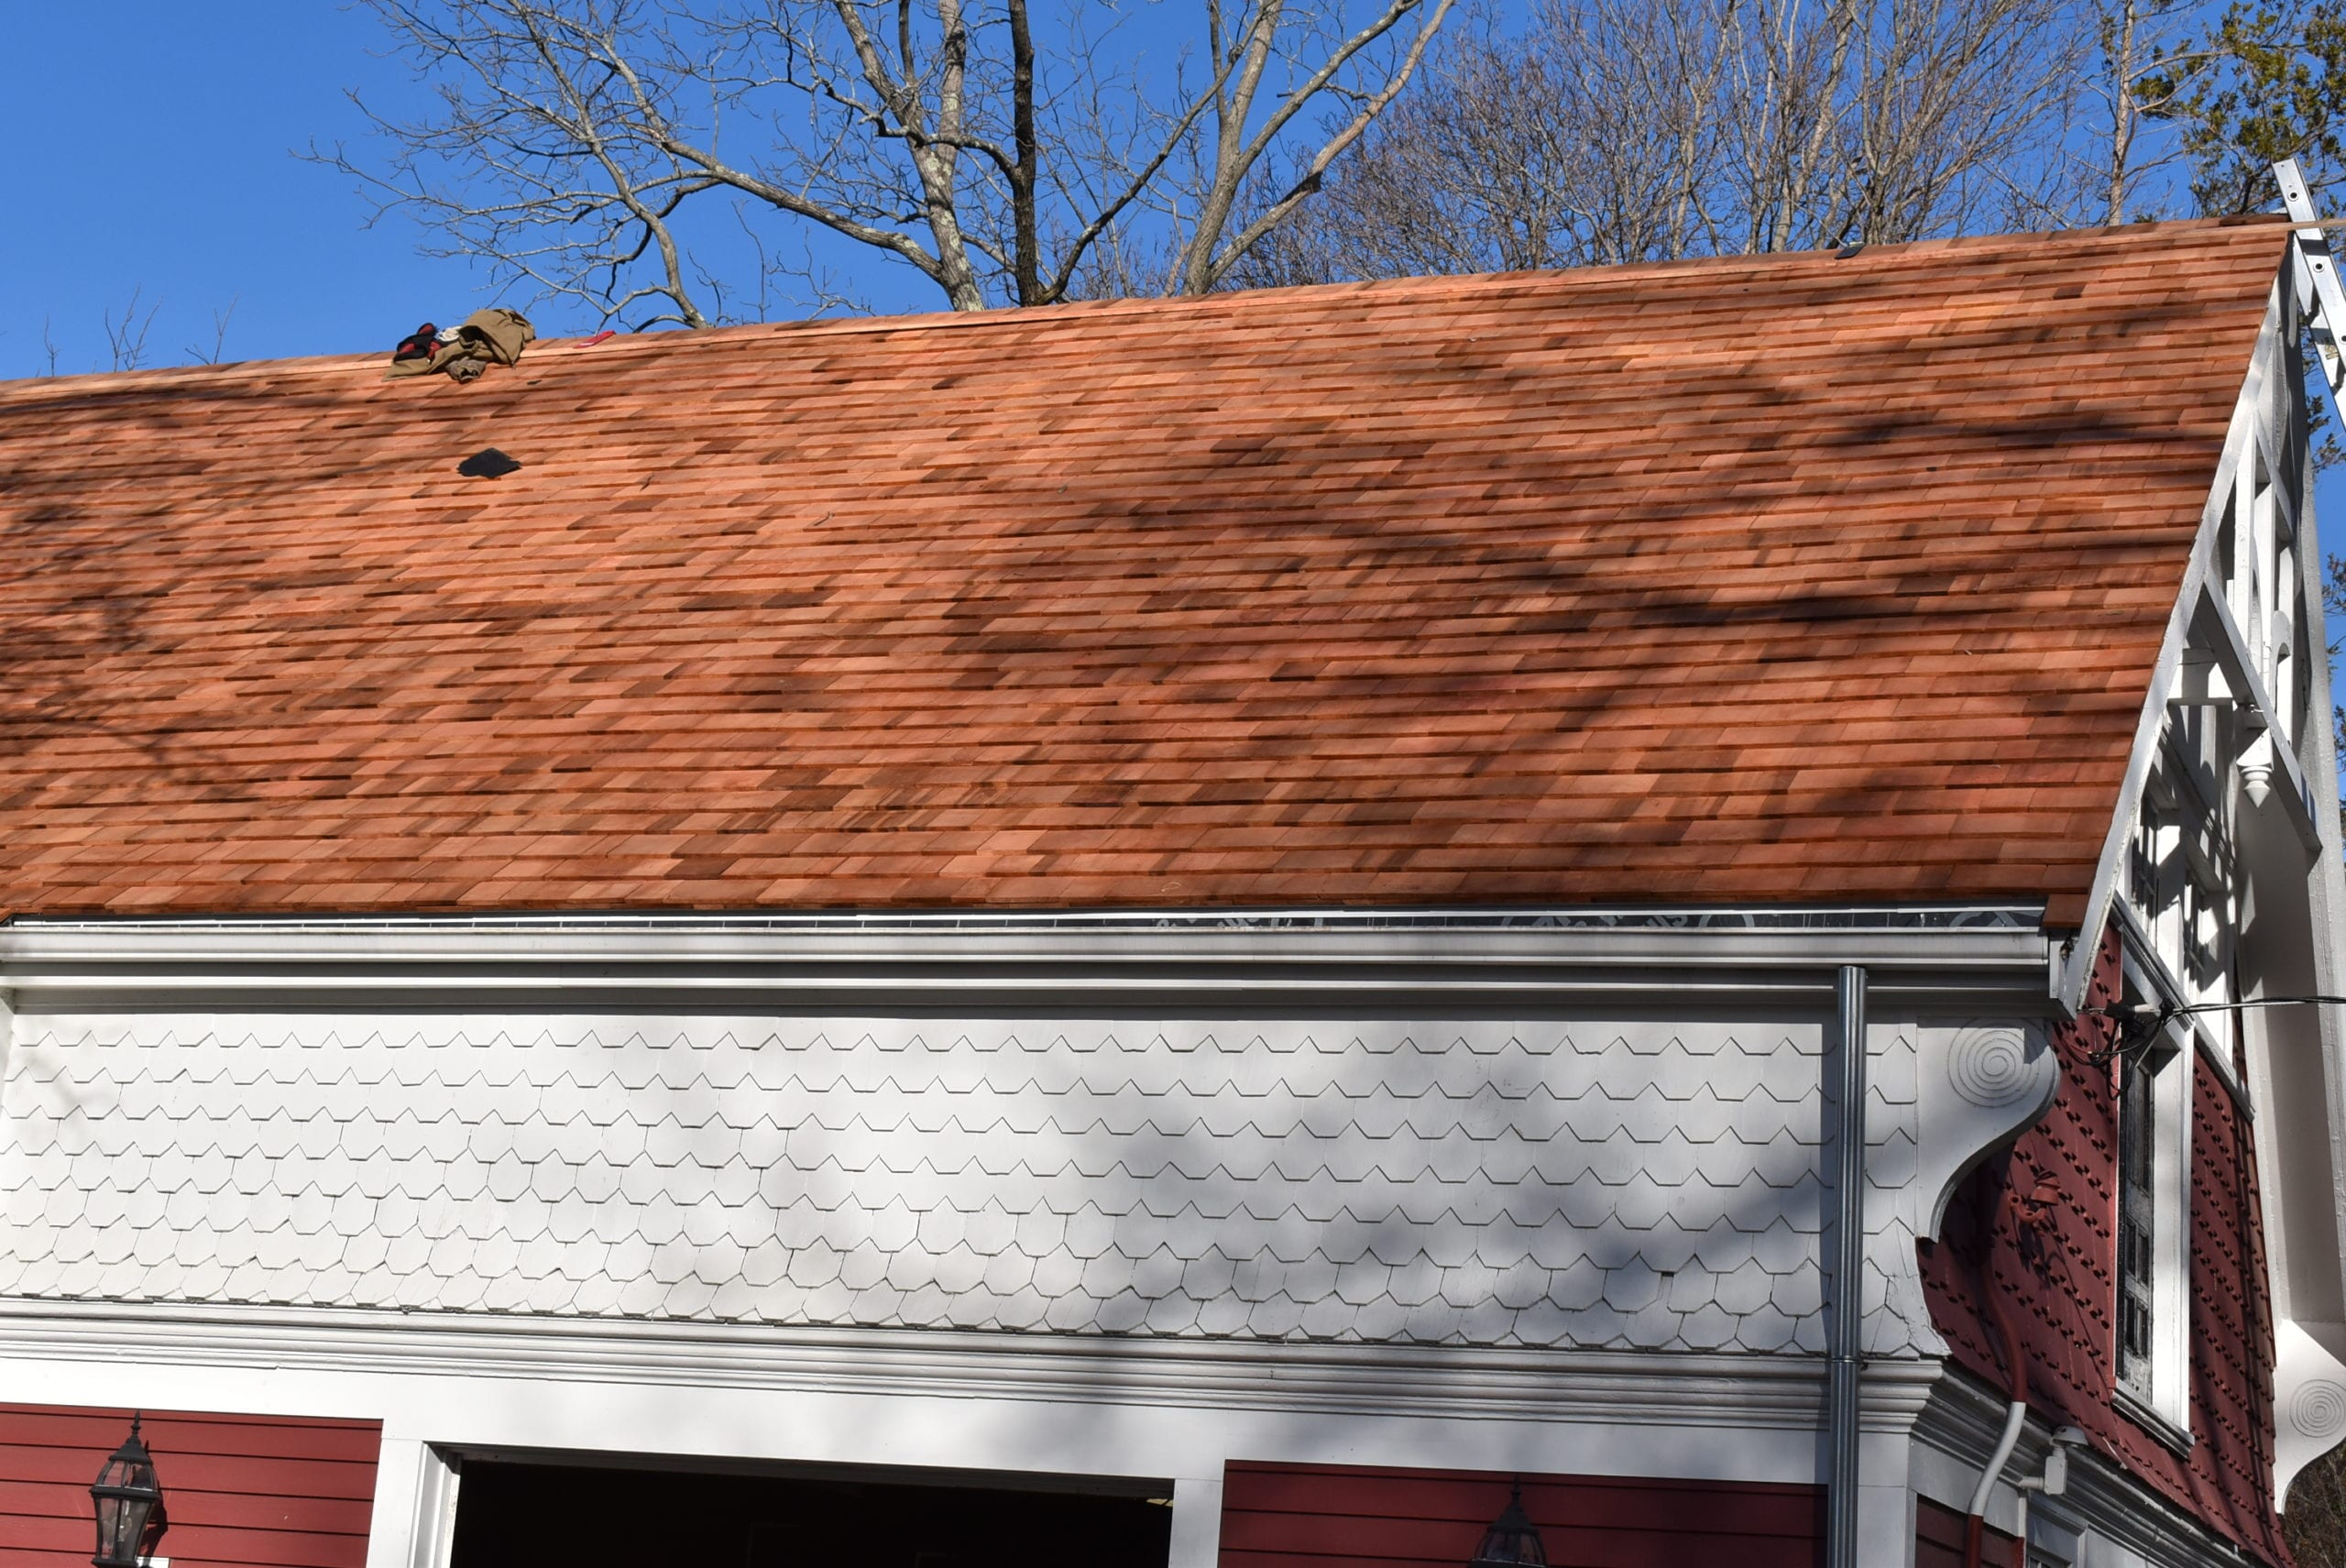 Gorgeous cedar shake roof installed in Milton, MA! Cedar shakes are a durable and stylish option for homes.